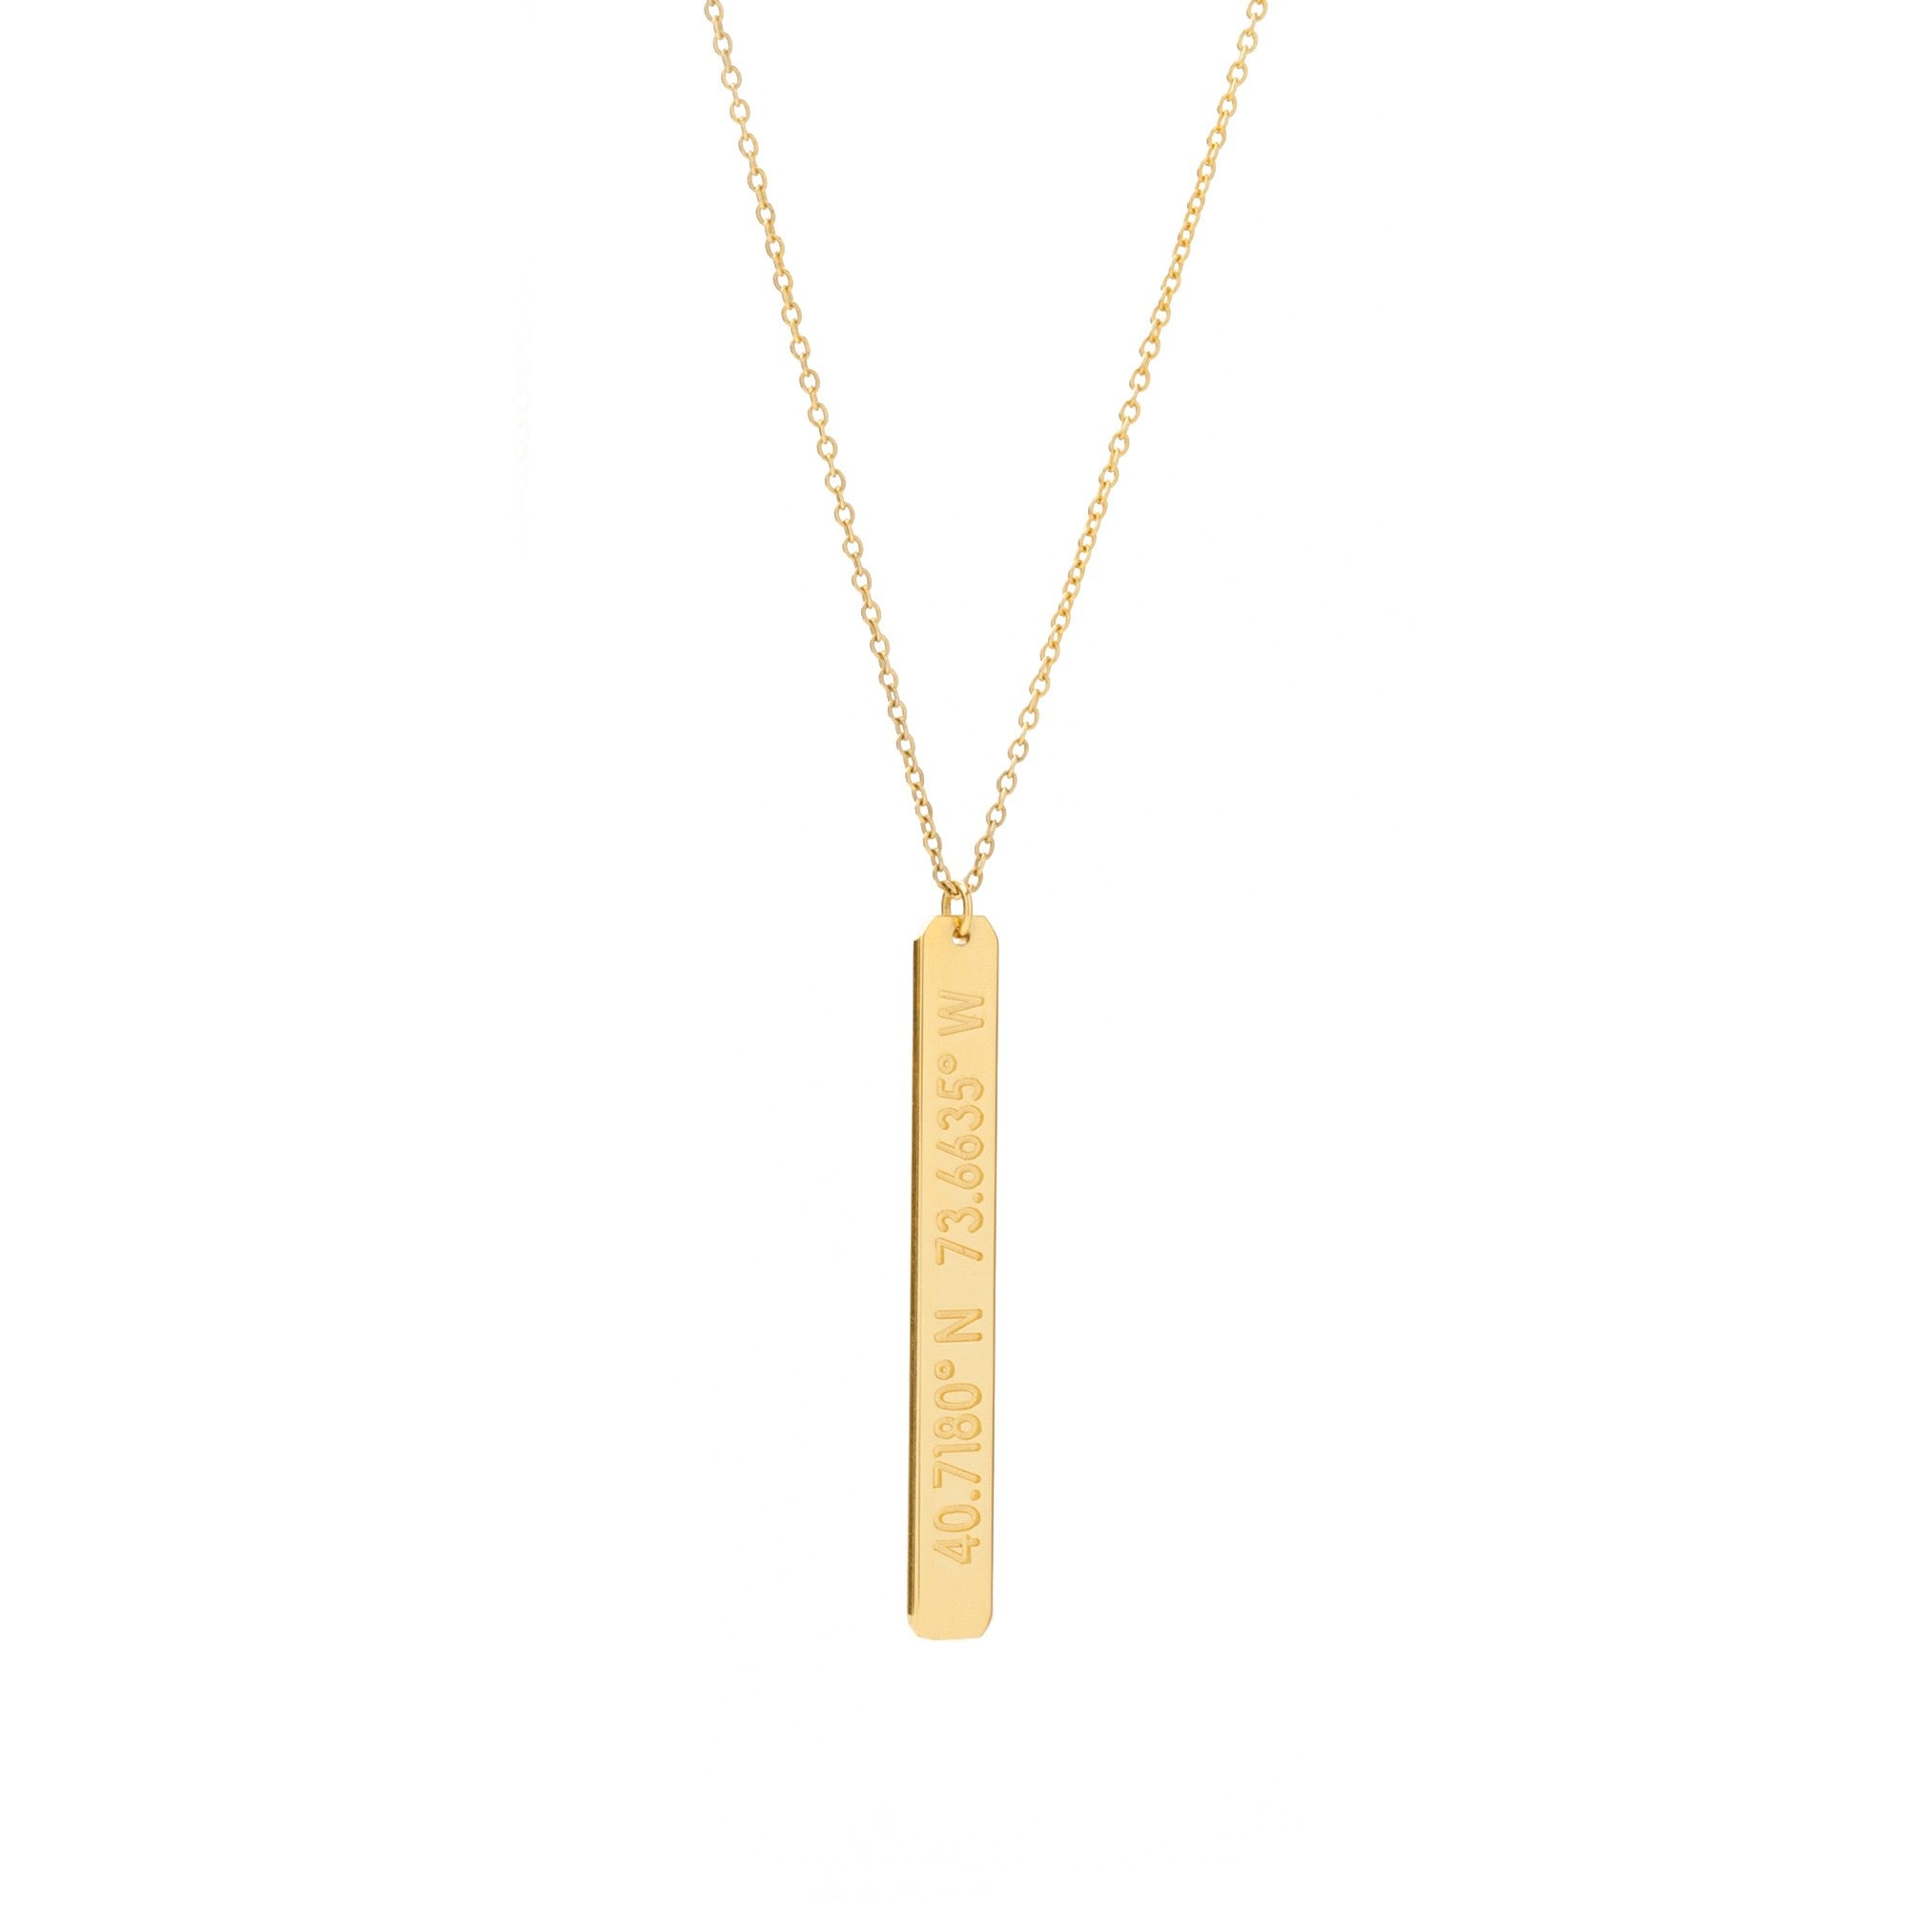 A long gold vertical pendant with inscription on gold chain